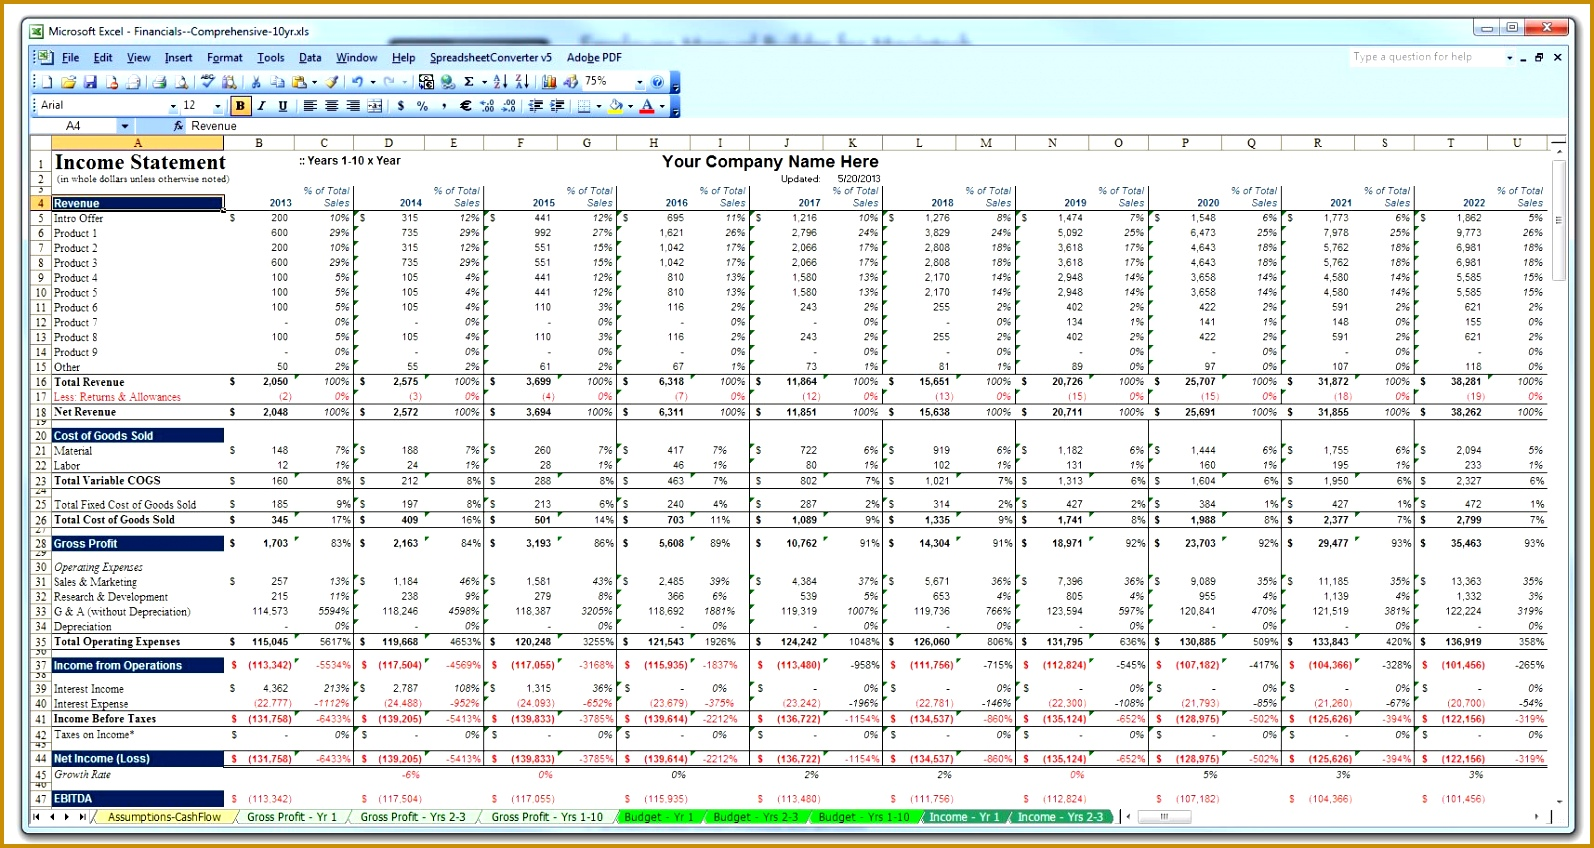 10 Year Business Plan Financial Bud Projection Model In Excel Download Free Template Pdf Download Free 1594848